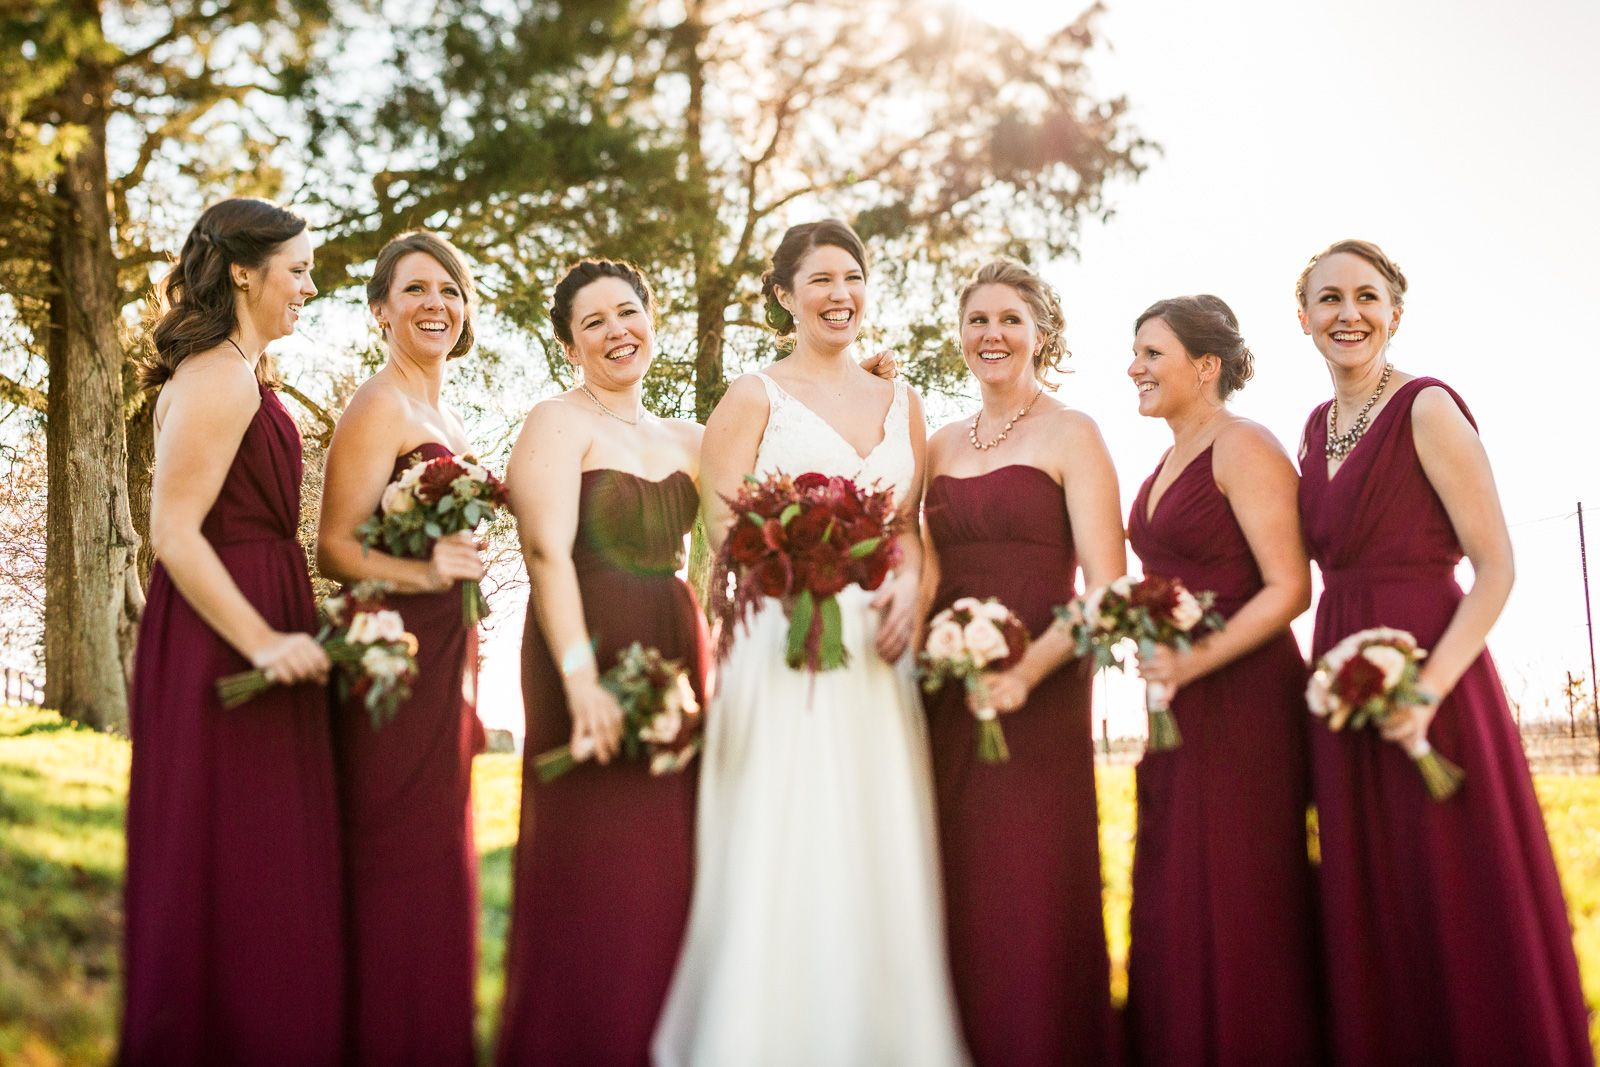 Wine colored bridesmaid dresses winery wedding romantic outdoors wine colored bridesmaid dresses winery wedding romantic outdoors ombrellifo Gallery